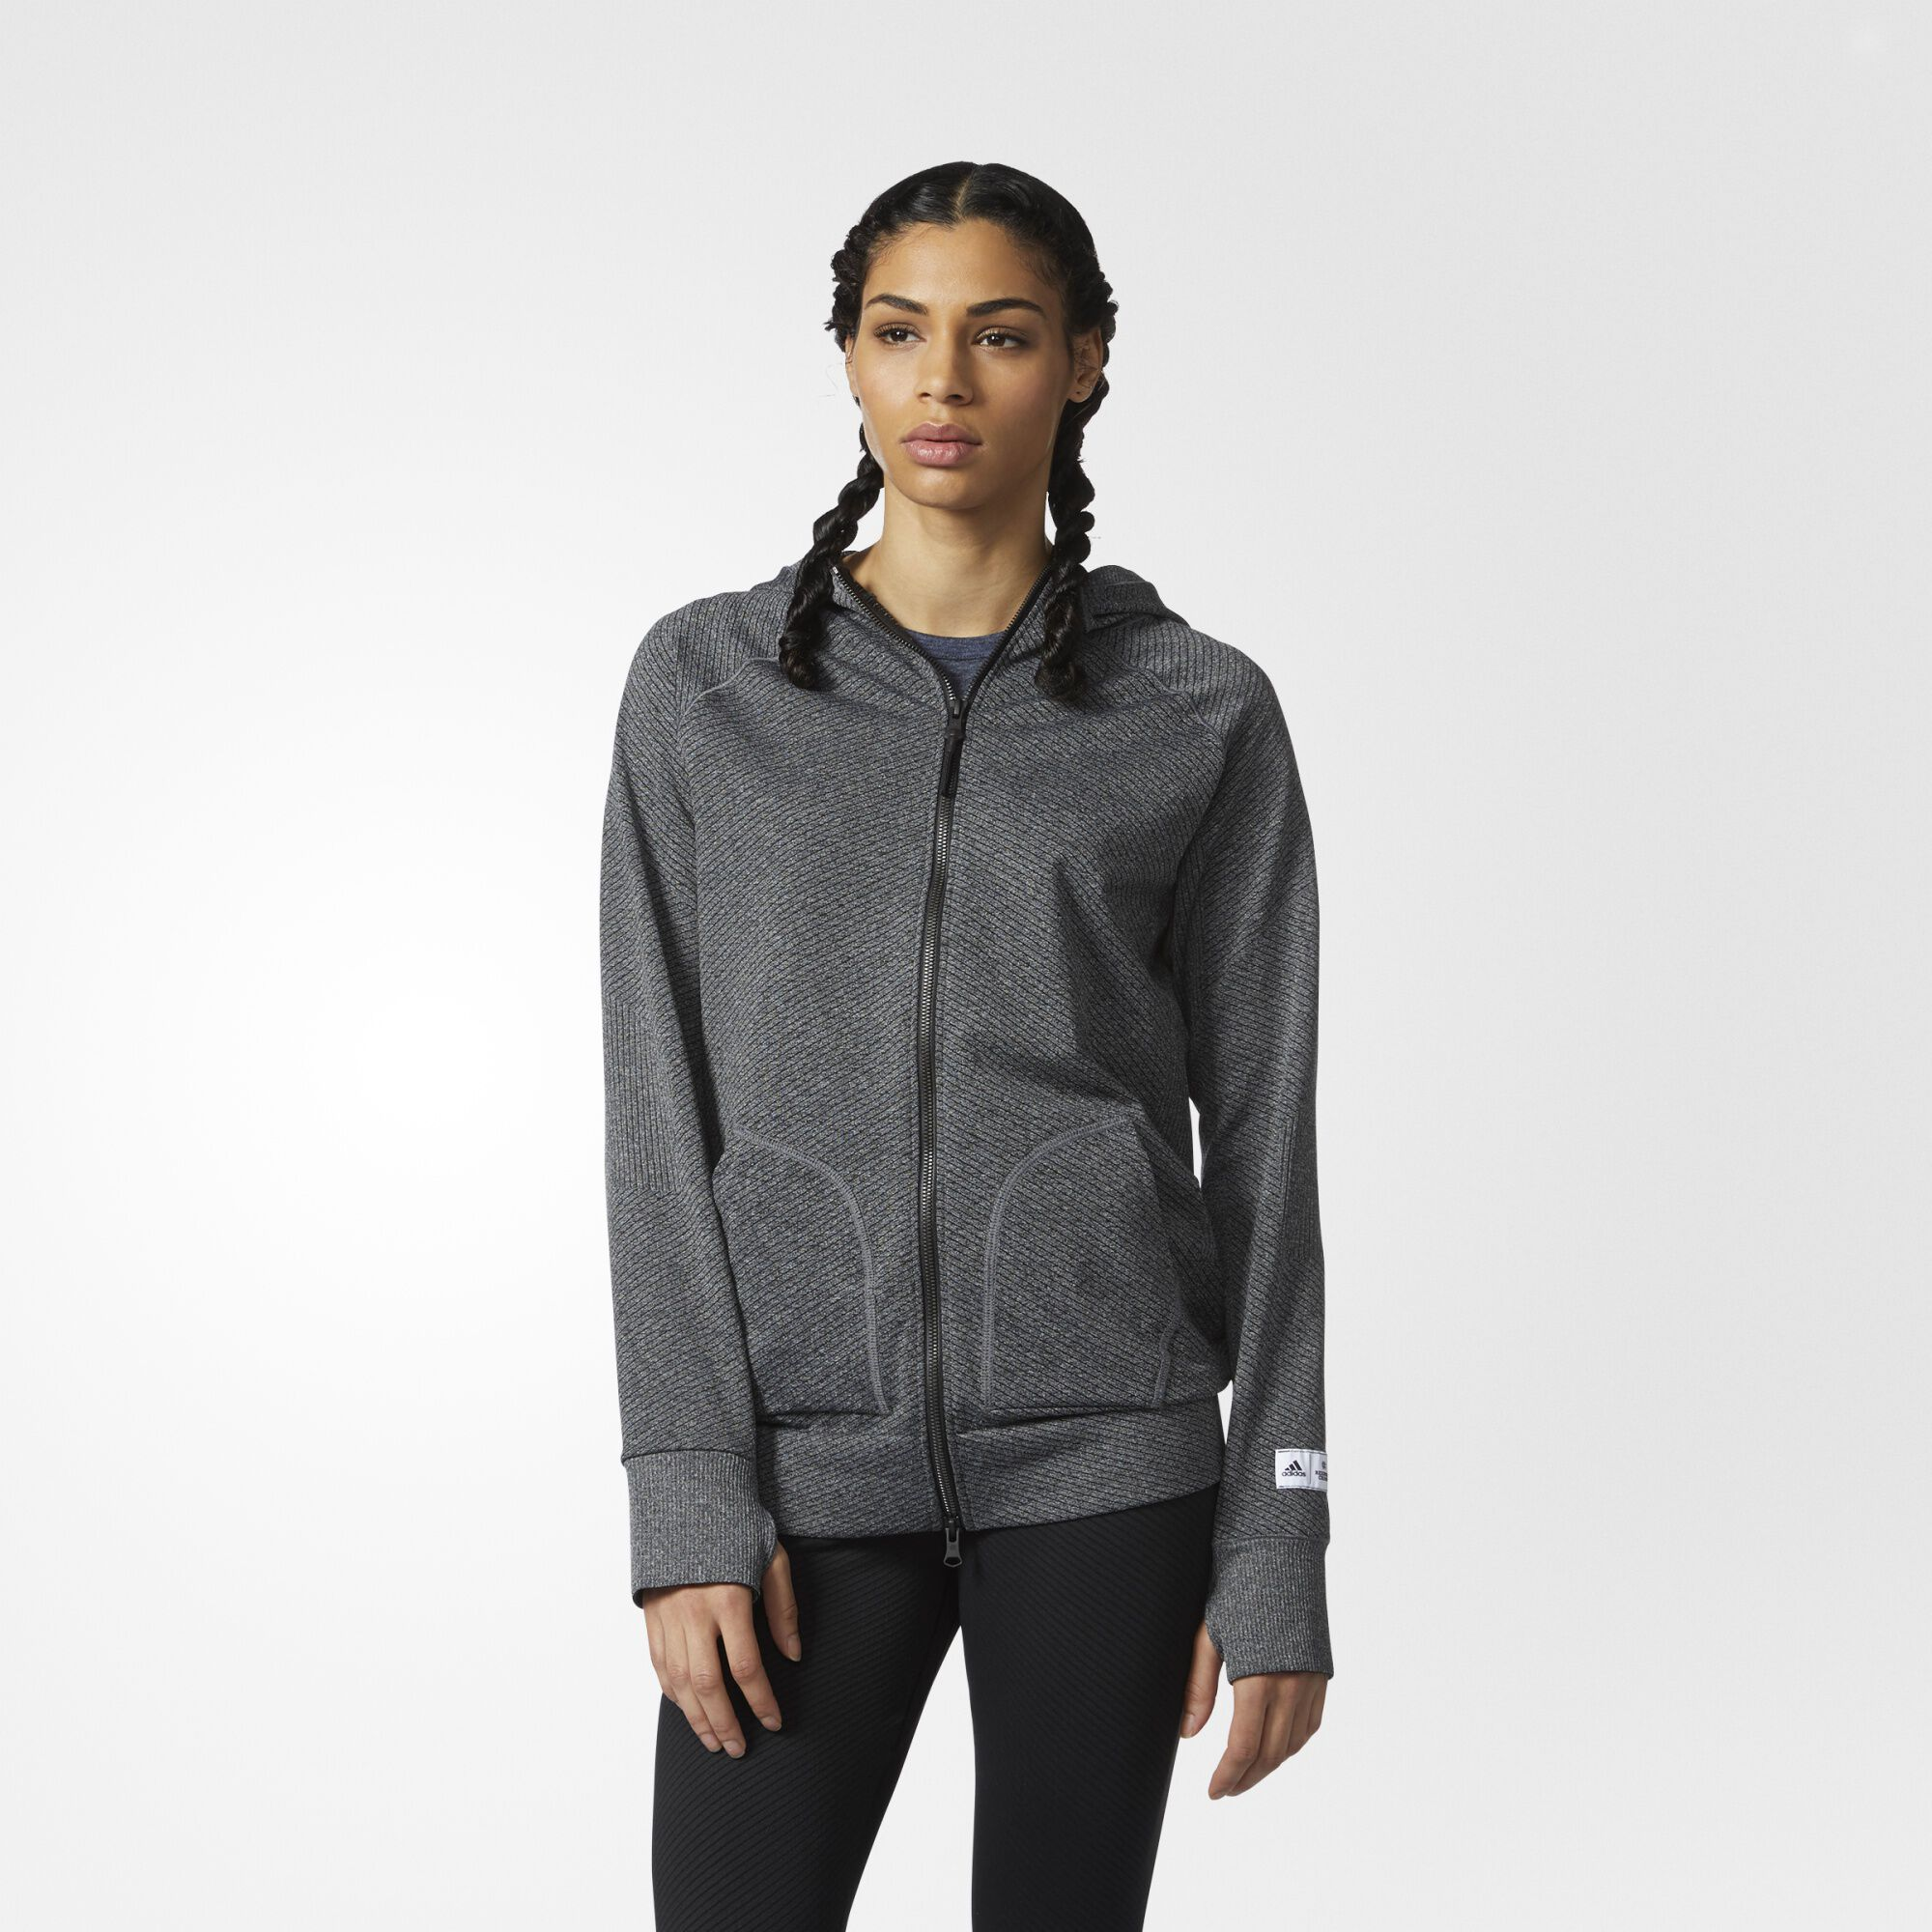 bfbbf4ed5130 Buy adidas jacket womens sale   OFF58% Discounted